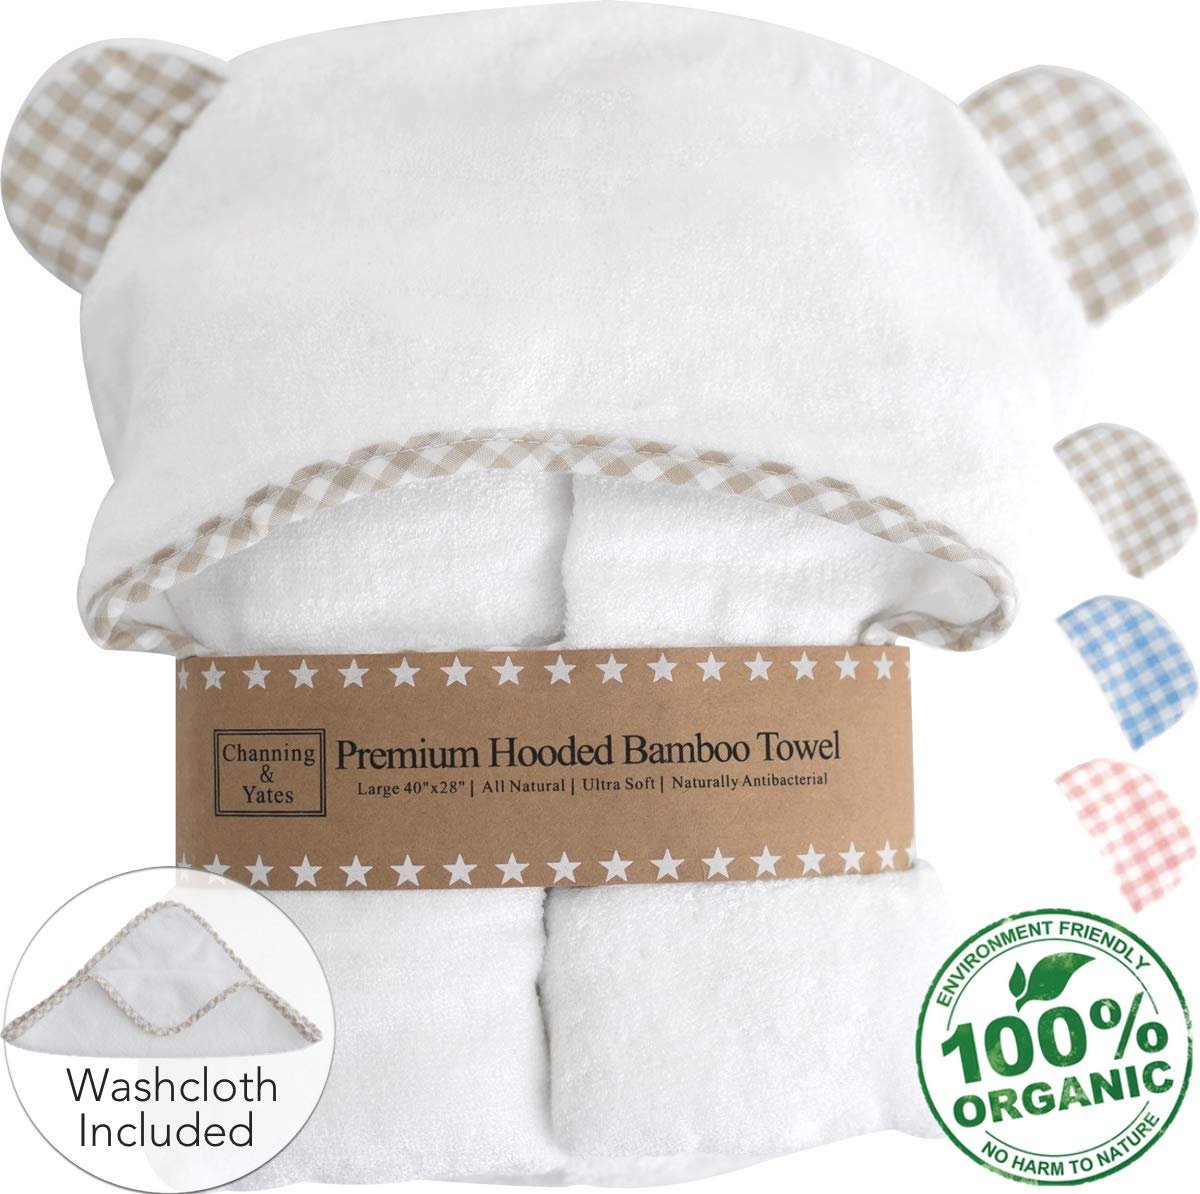 Premium Baby Towel with Hood and Washcloth Gift Set - Organic Baby Towels and Washcloths - Bamboo Hooded Towels for Baby - Hypoallergenic Large Toddler Towels for Boys or Girls (Beige/White) by Channing & Yates